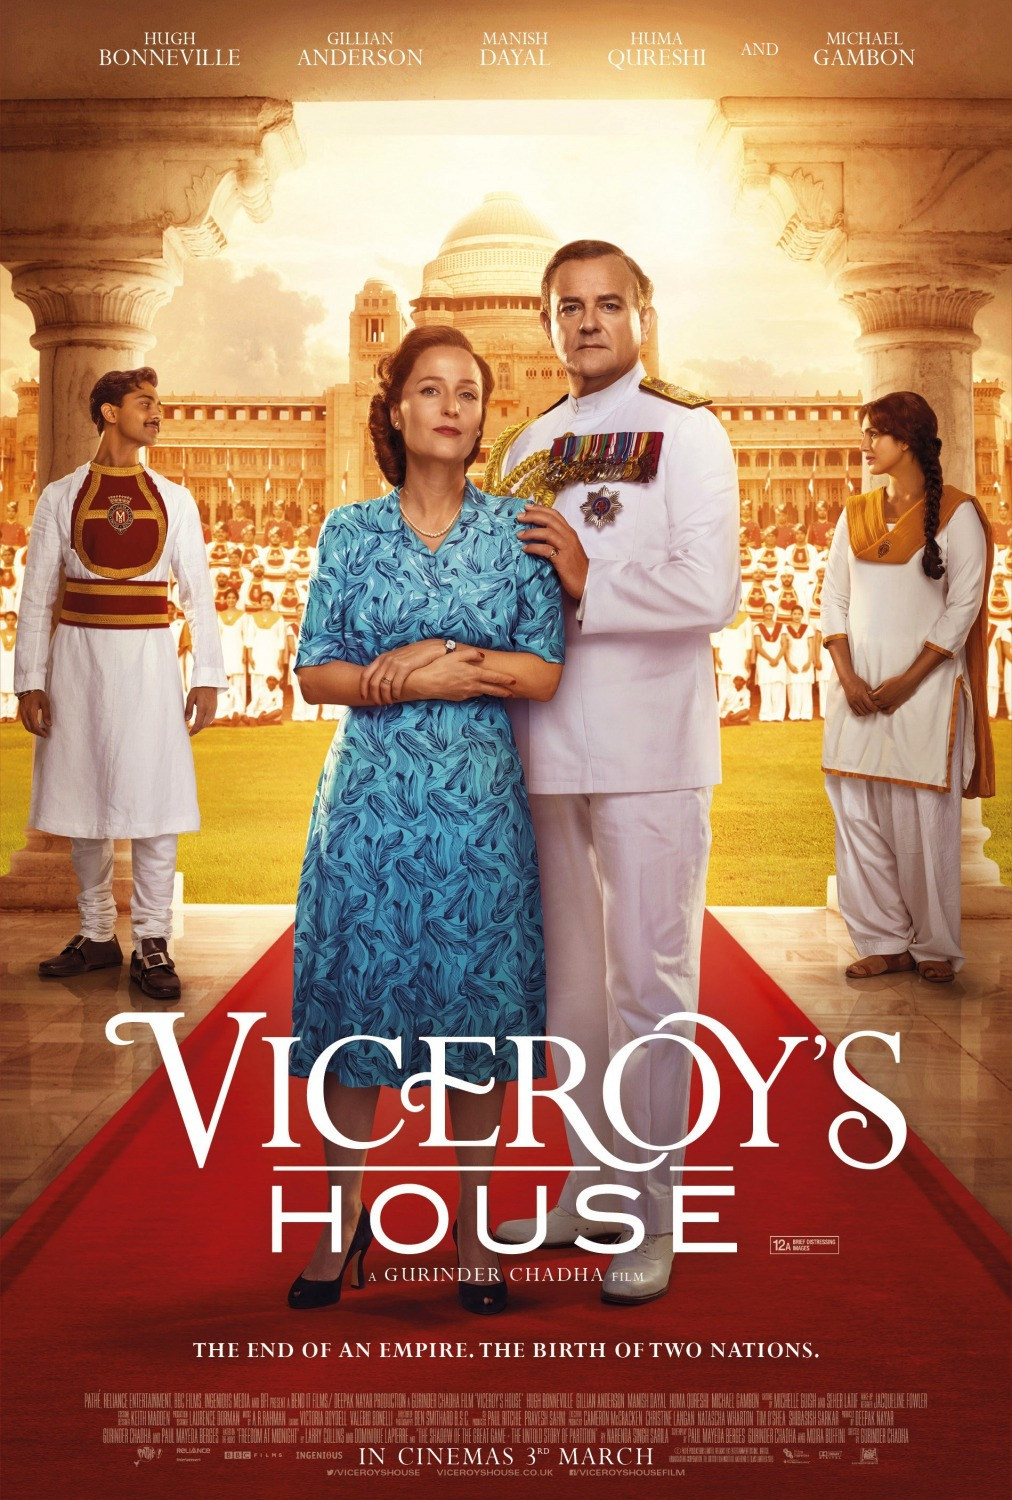 The Viceroy's House (2017) Google image from https://www.imdb.com/title/tt4977530/